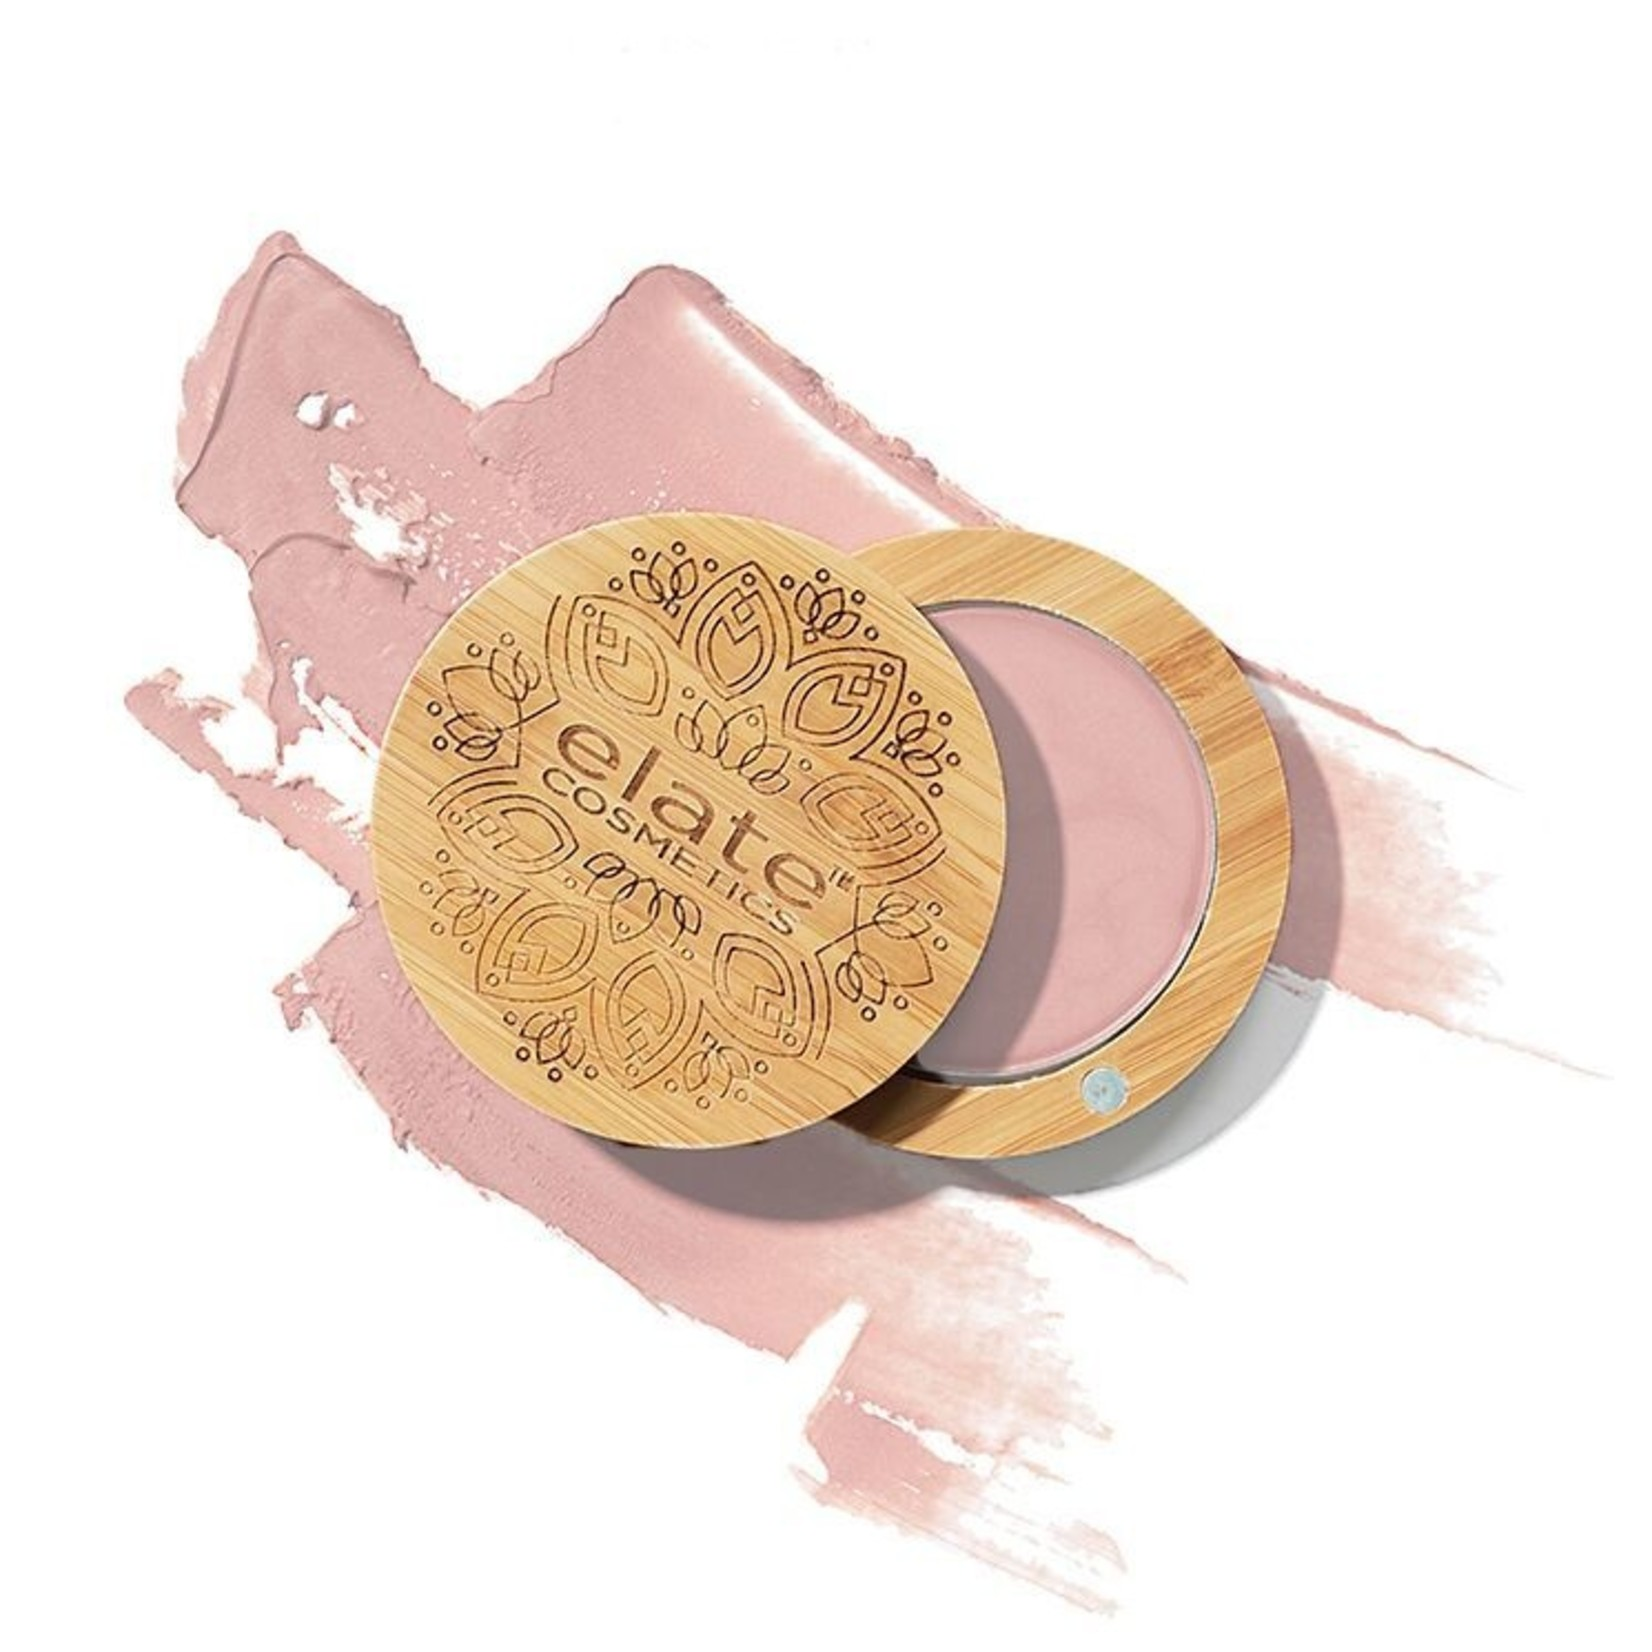 ELATE COSMETICS UNIVERSAL CREME - CELESTIAL HIGHLIGHT (2 Options)